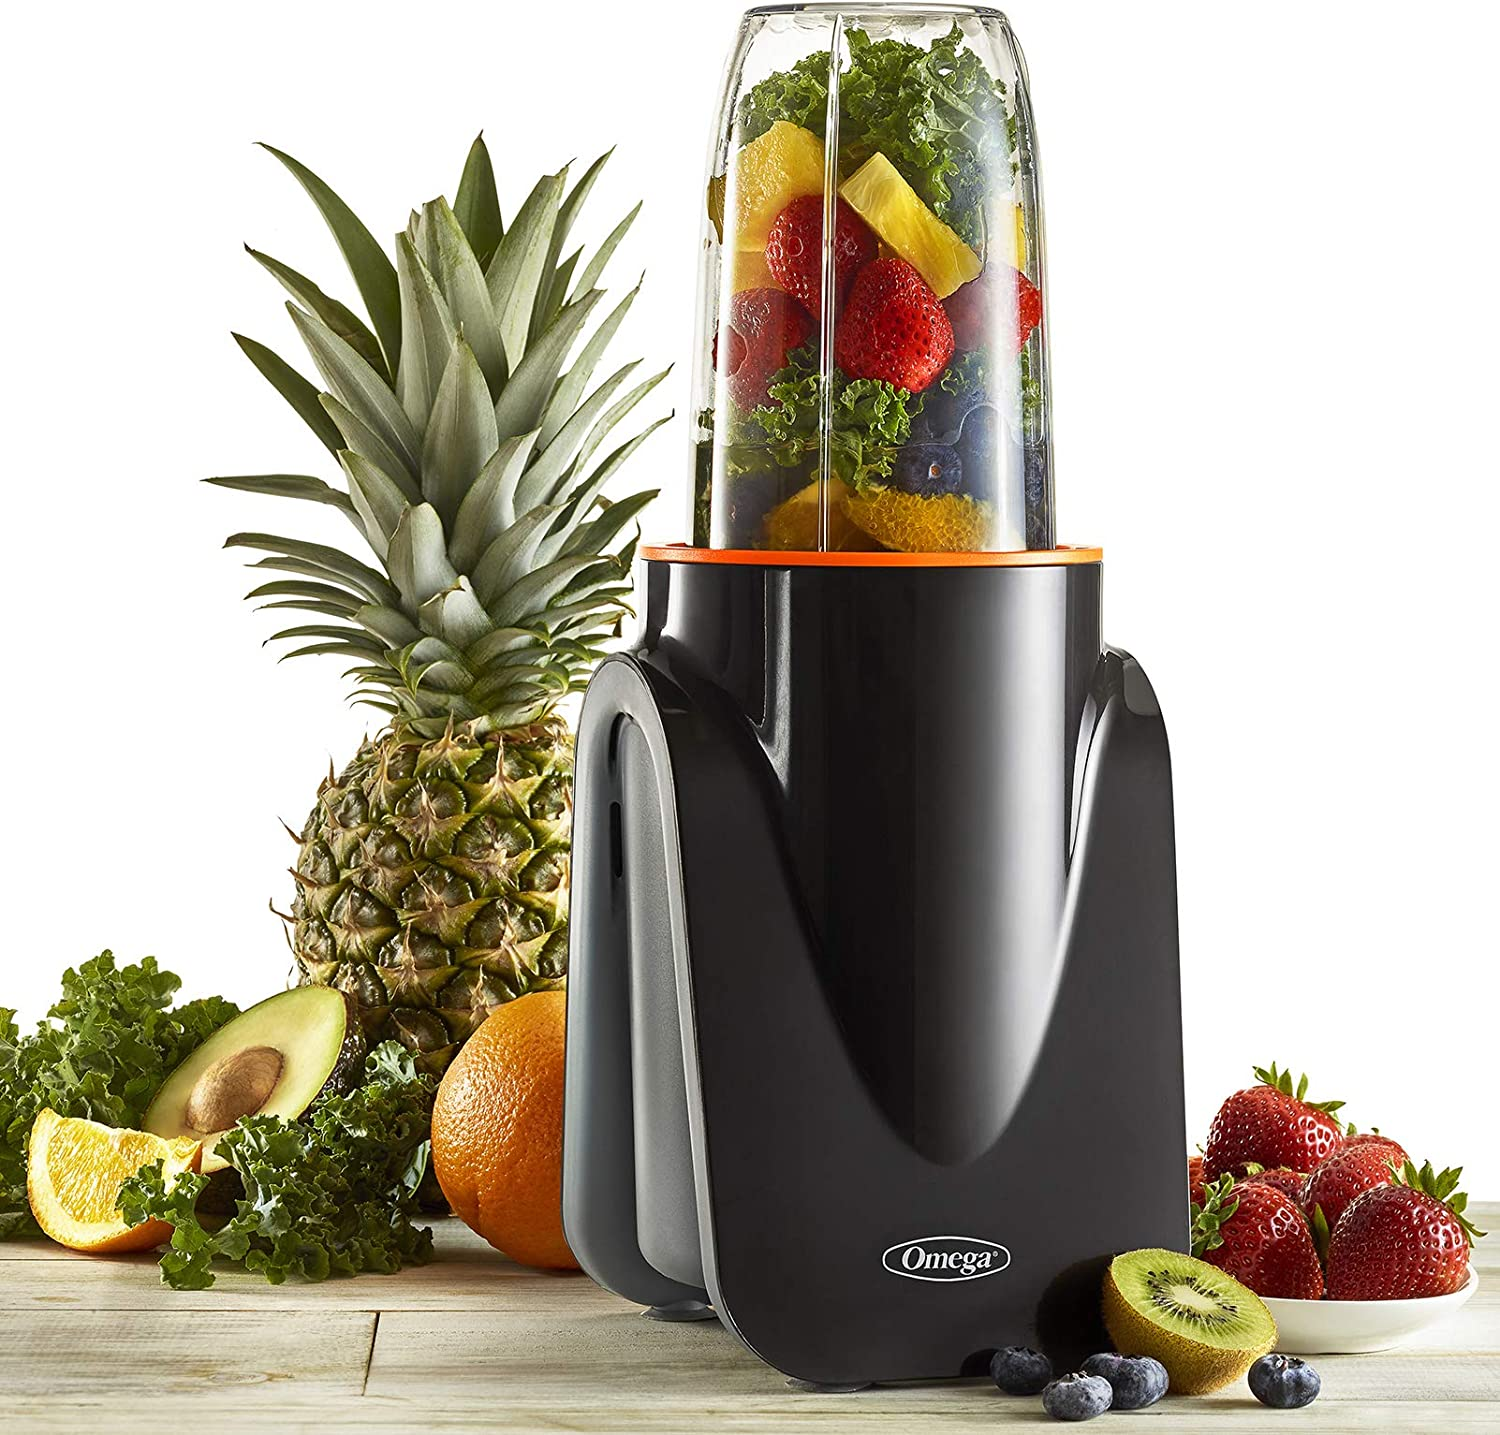 Omega PBL1000BD MeGo Nutrition on The Go Personal Blender for Healthy Smoothies Powerful Motor and Auto Shutoff Hot or Cold with 2 Blending Cup, Medium, Black